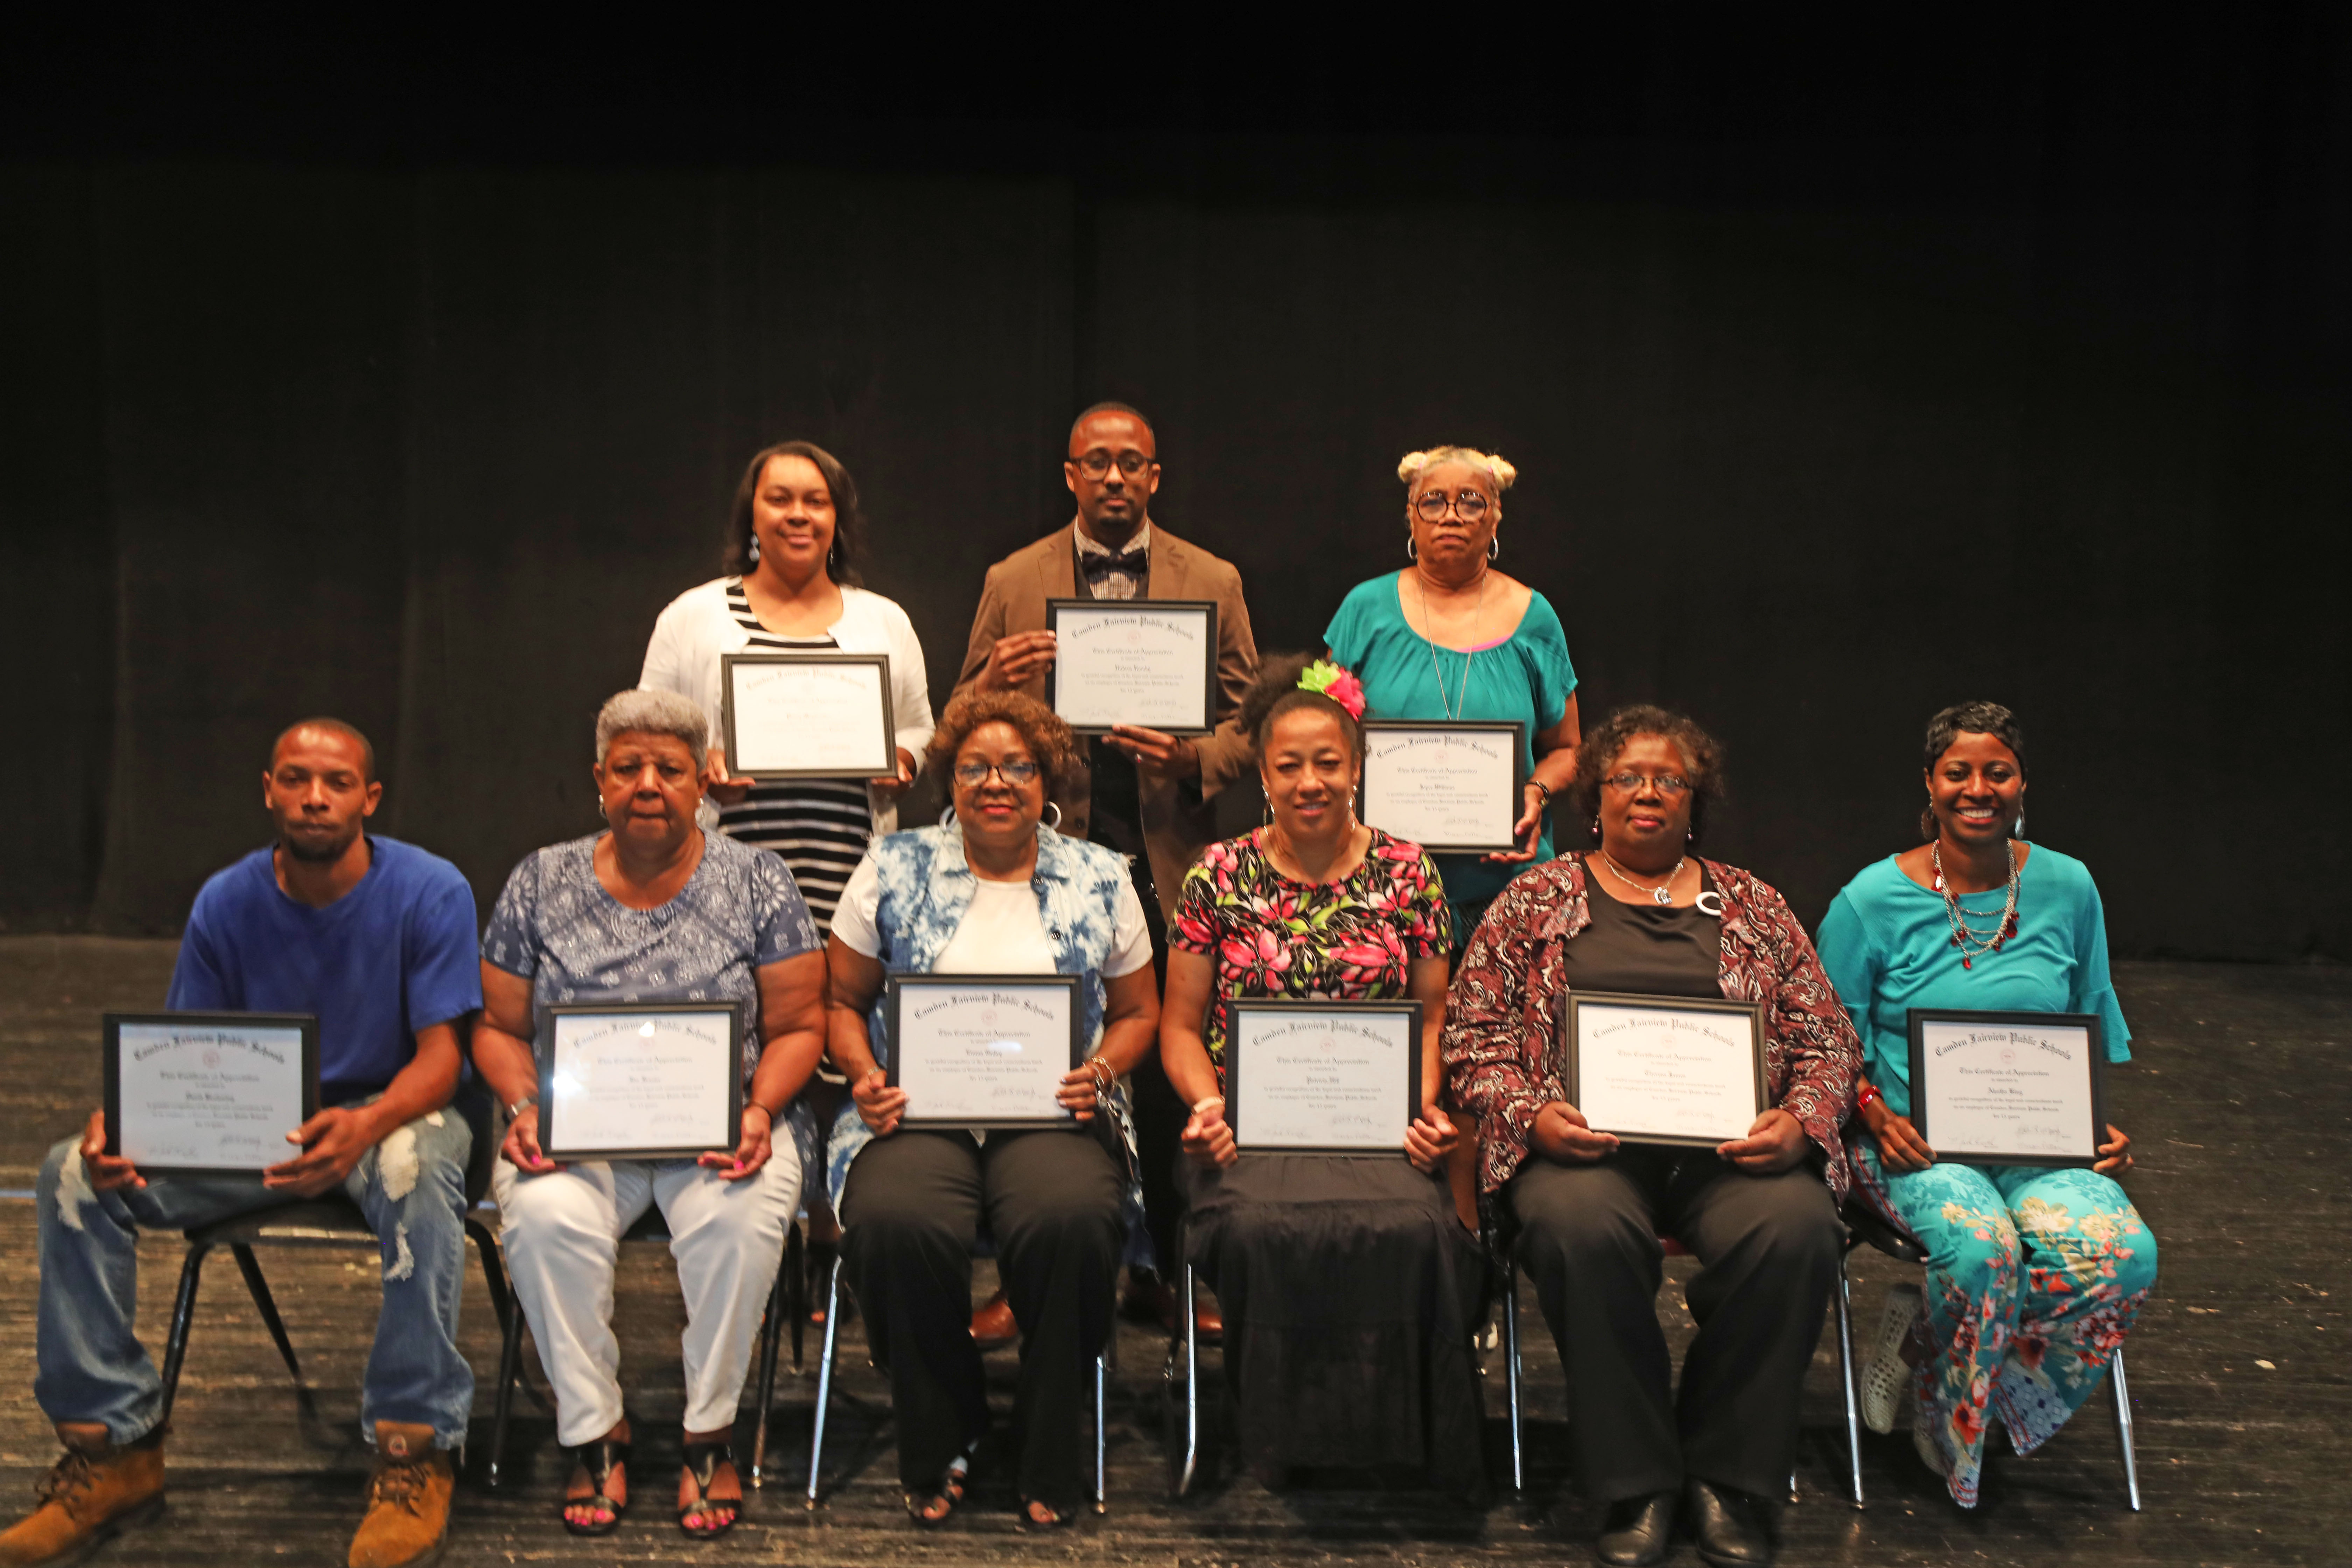 15 Year Classified: Front Row L to R: David Browning, Ida Frazier, Emma Gulley, patricia Hill, Theresa James, Aleatha King  Back Row L to R: Penny Mayweather, Undrea Romby, Joyce Williams